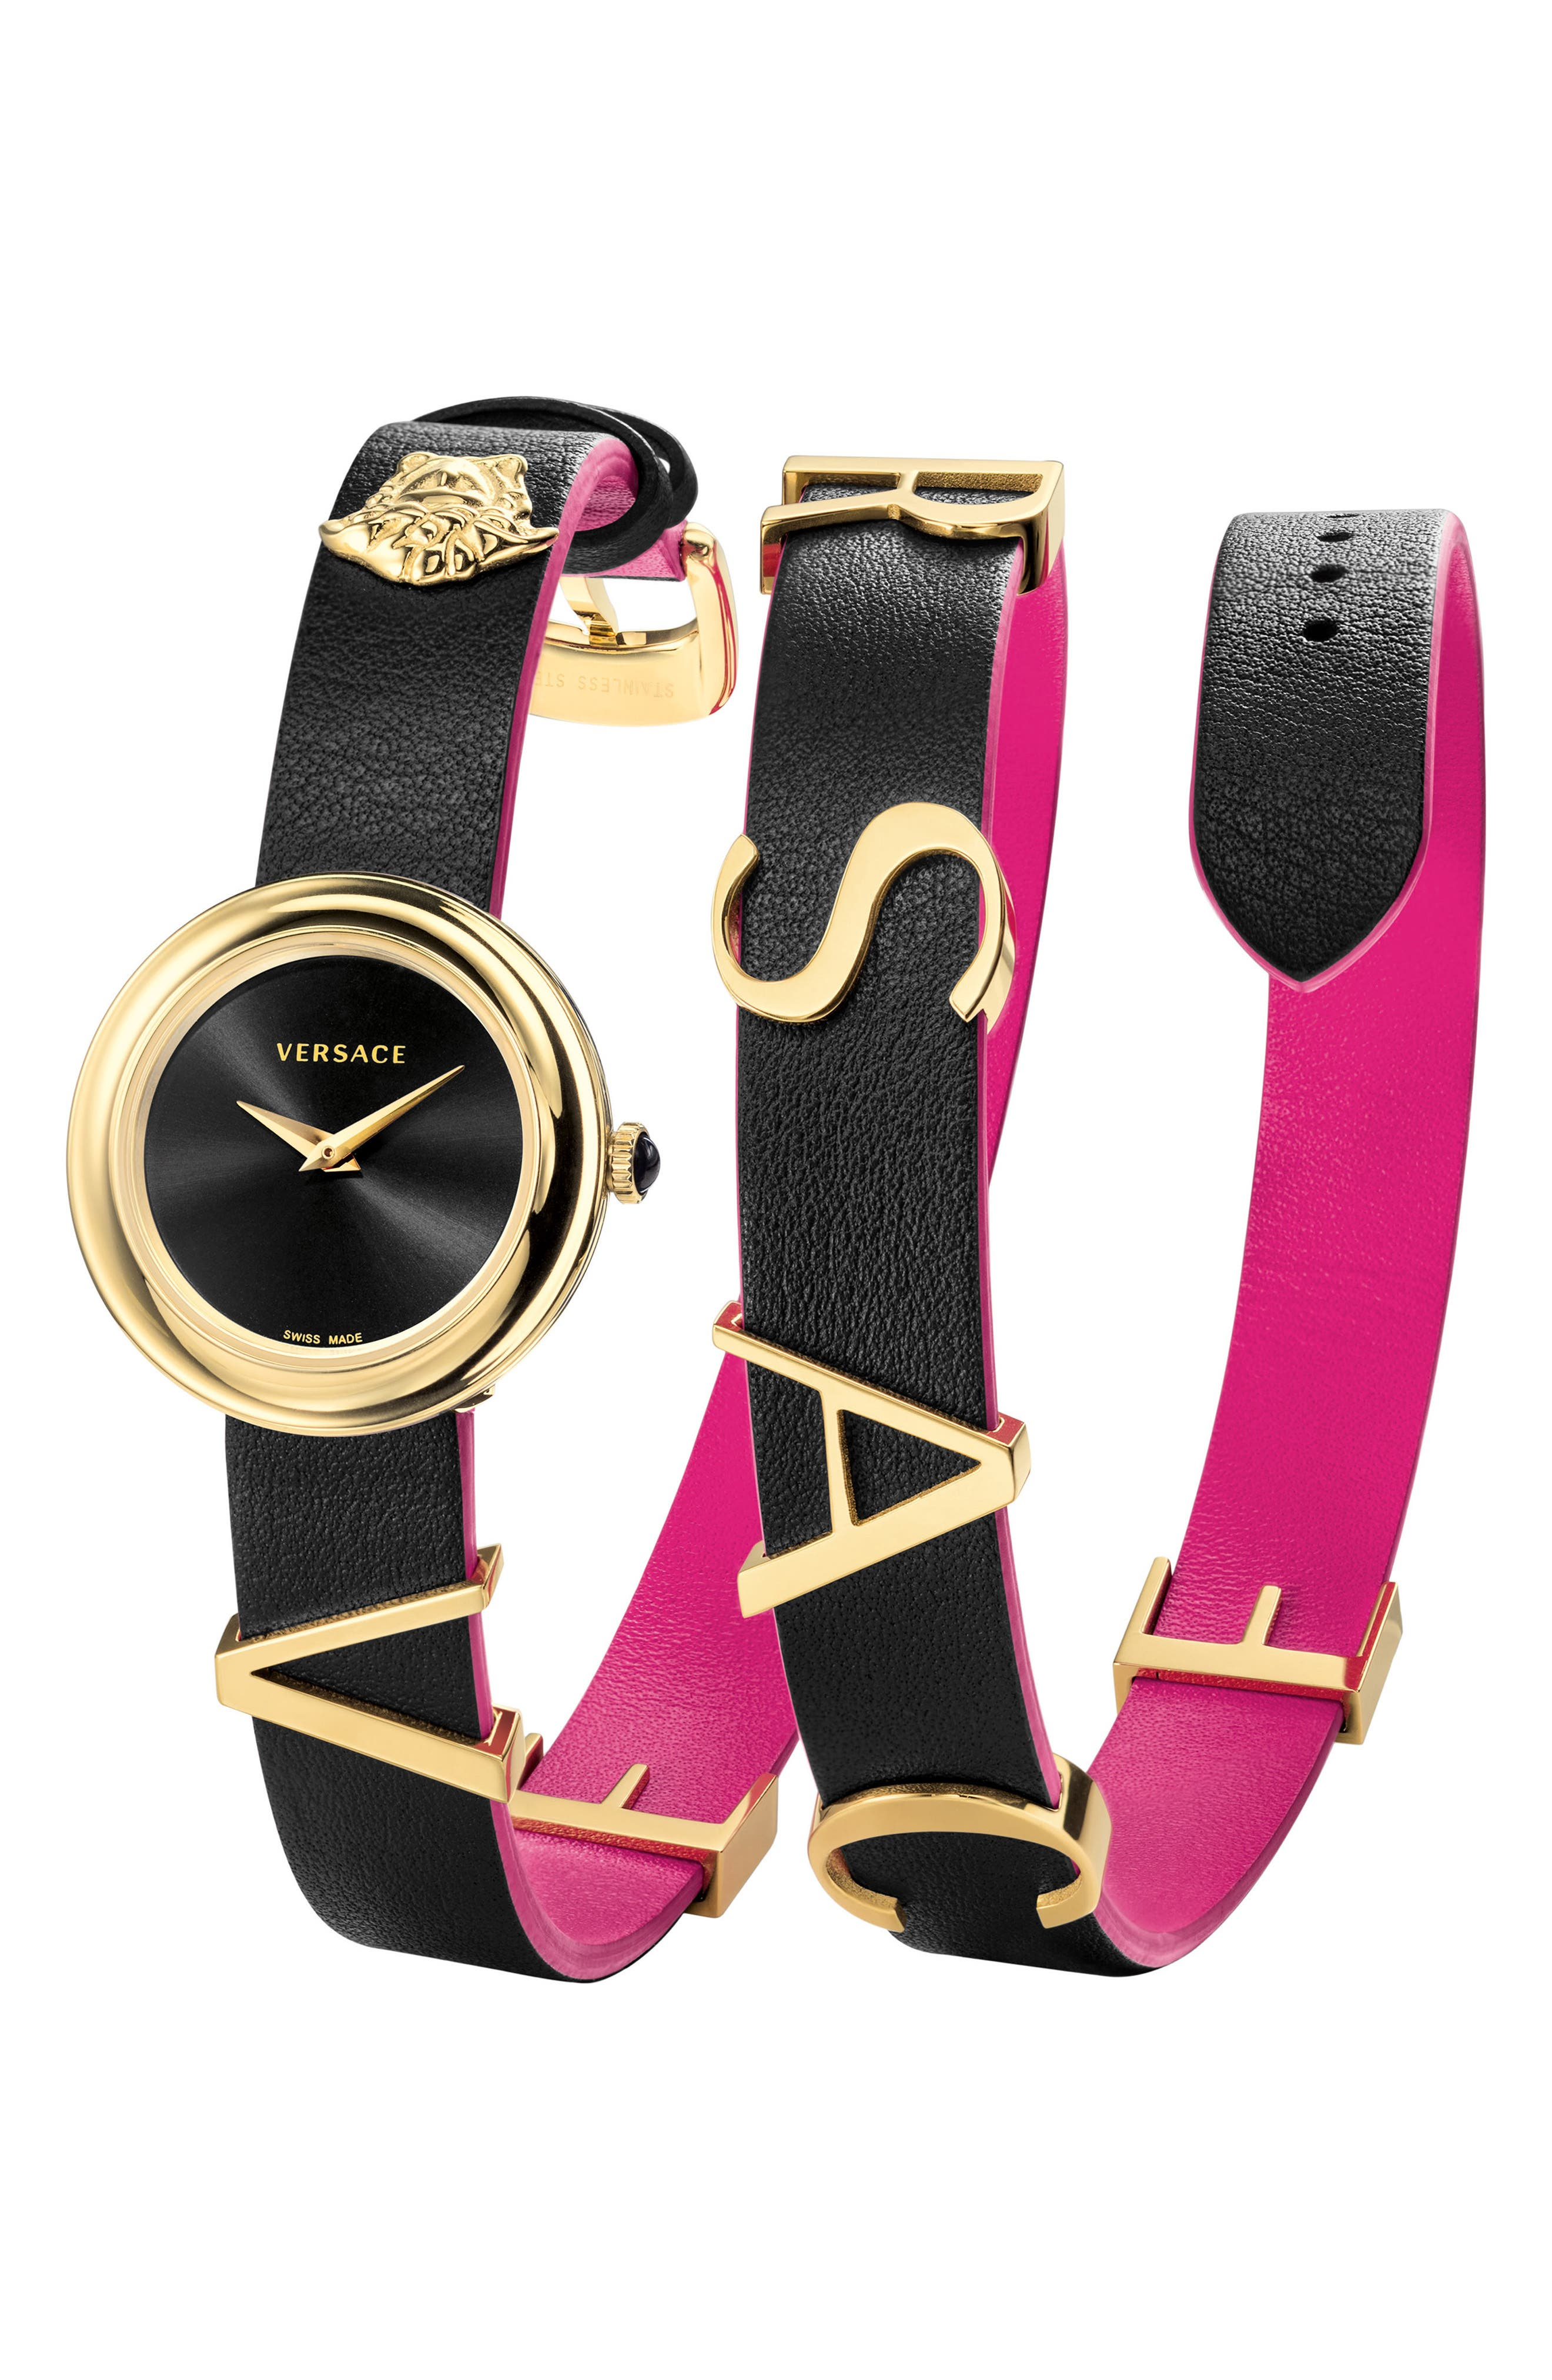 VERSACE, V-Flare Double Wrap Leather Strap Watch, 28mm, Main thumbnail 1, color, BLACK/ SILVER/ GOLD